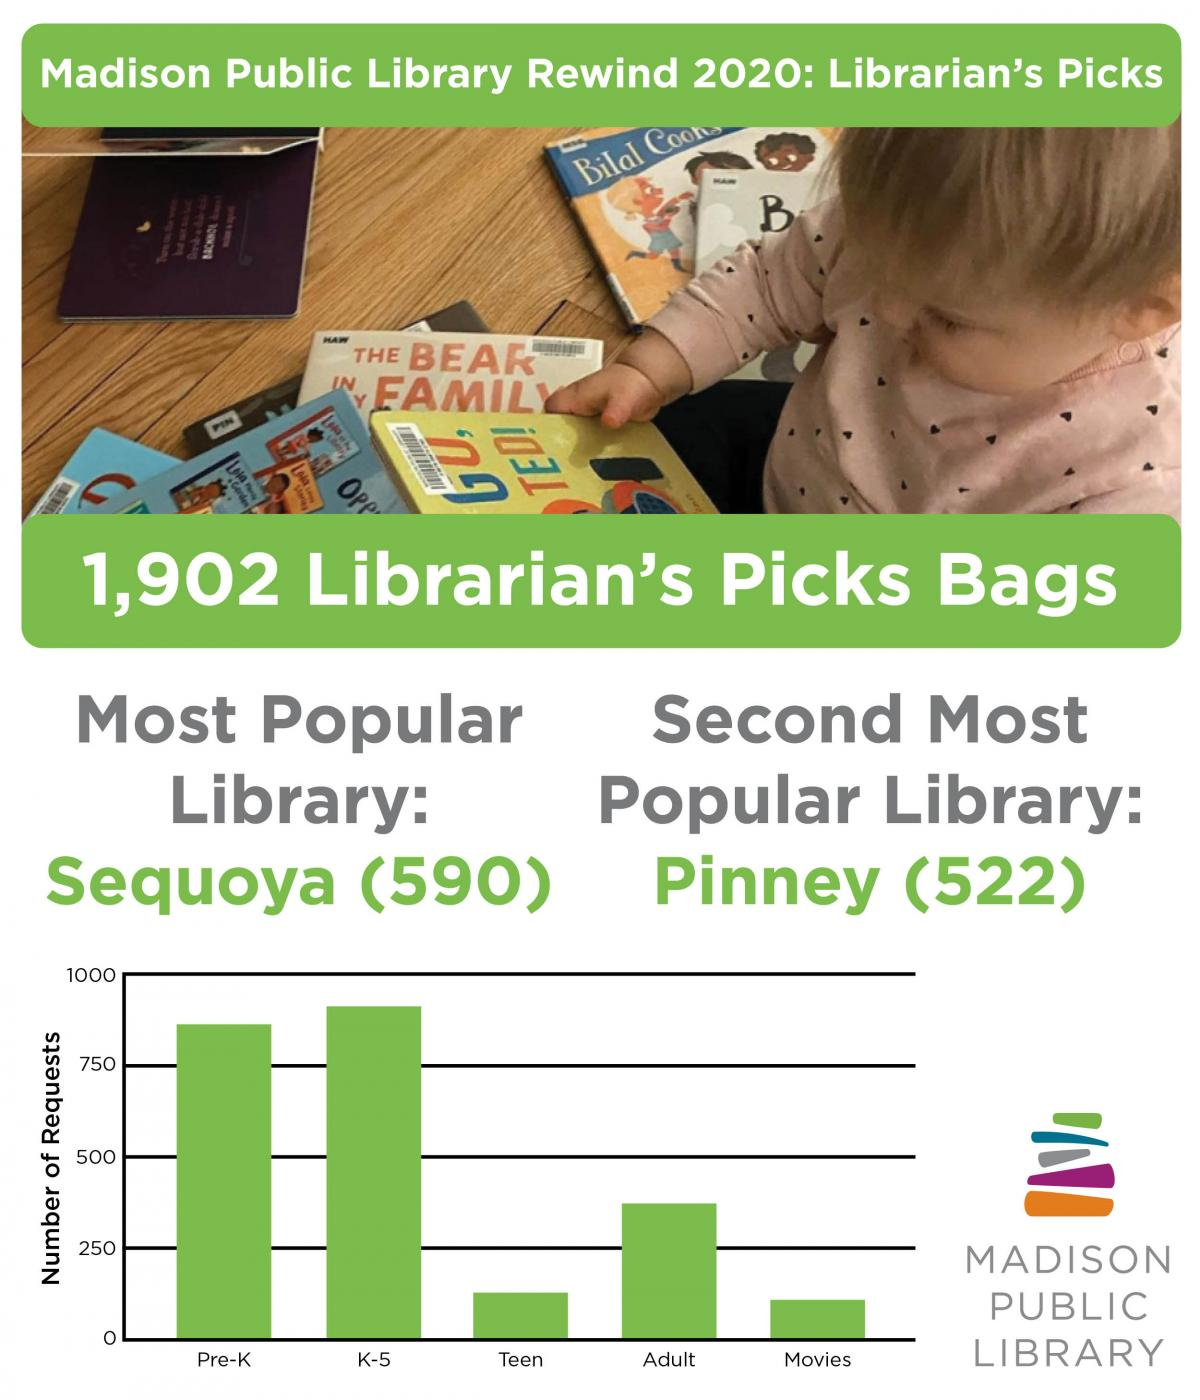 2020 Librarian's Picks data from Madison Public Library